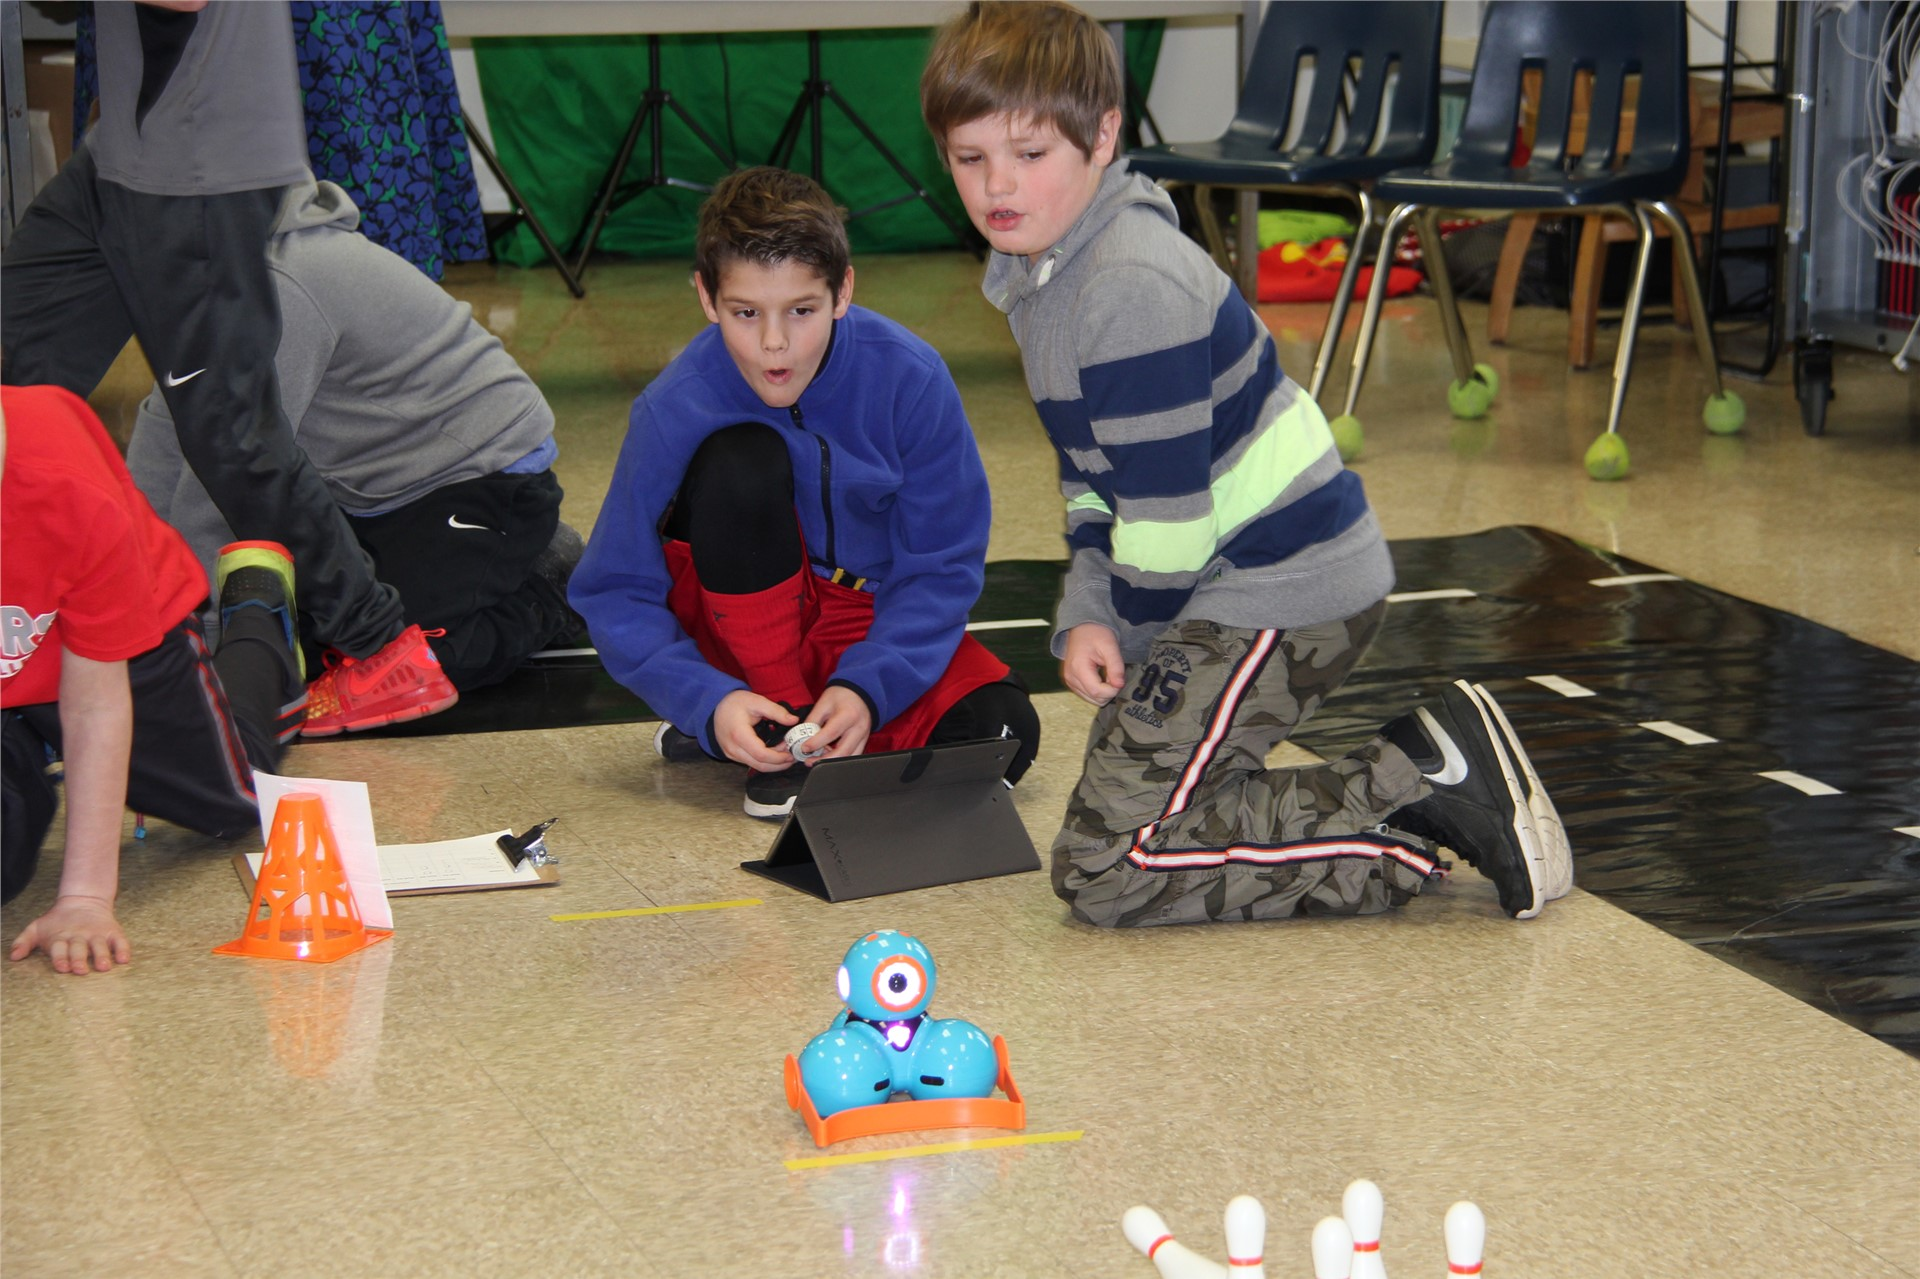 students watch electronic device on floor